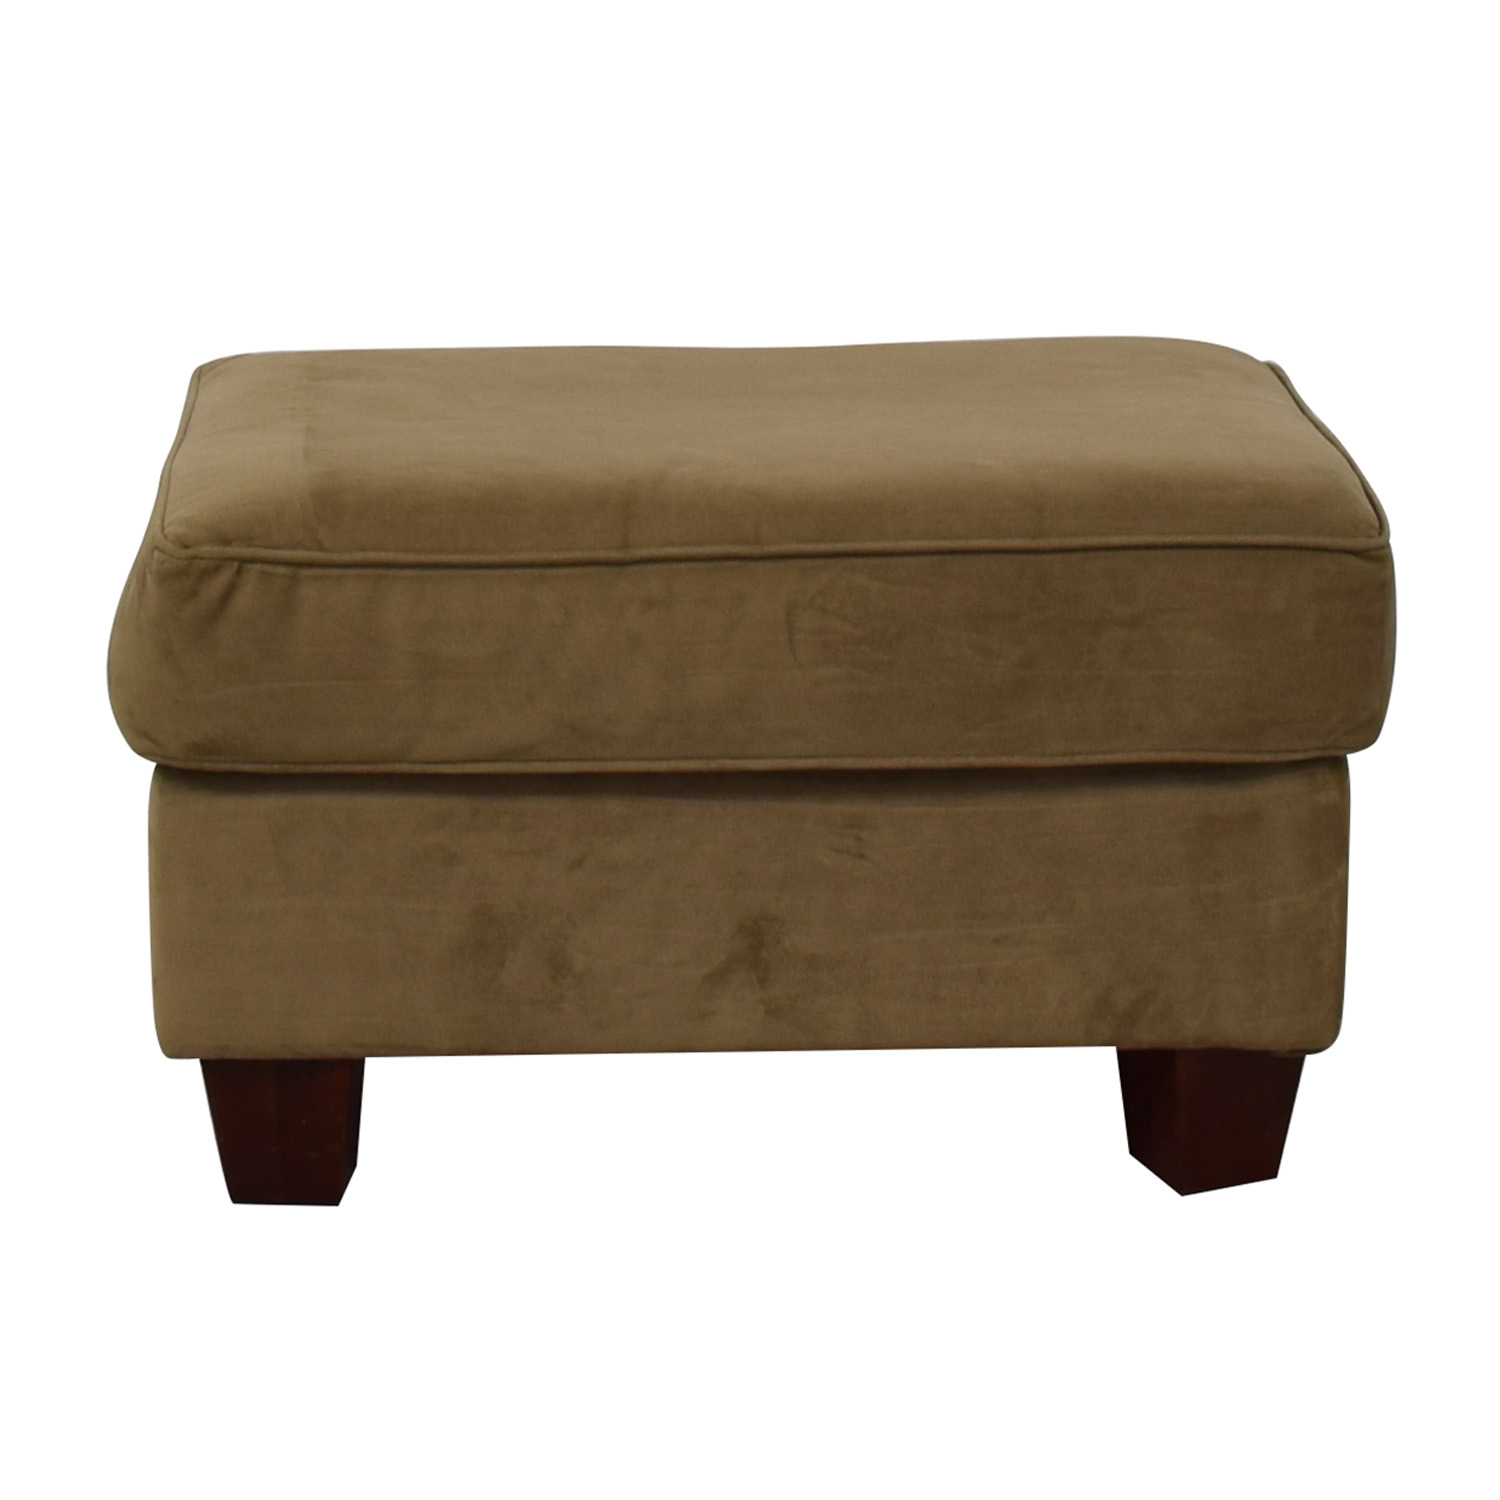 Bob's Discount Furniture Bob's Discount Furniture Bella Tan Ottoman second hand